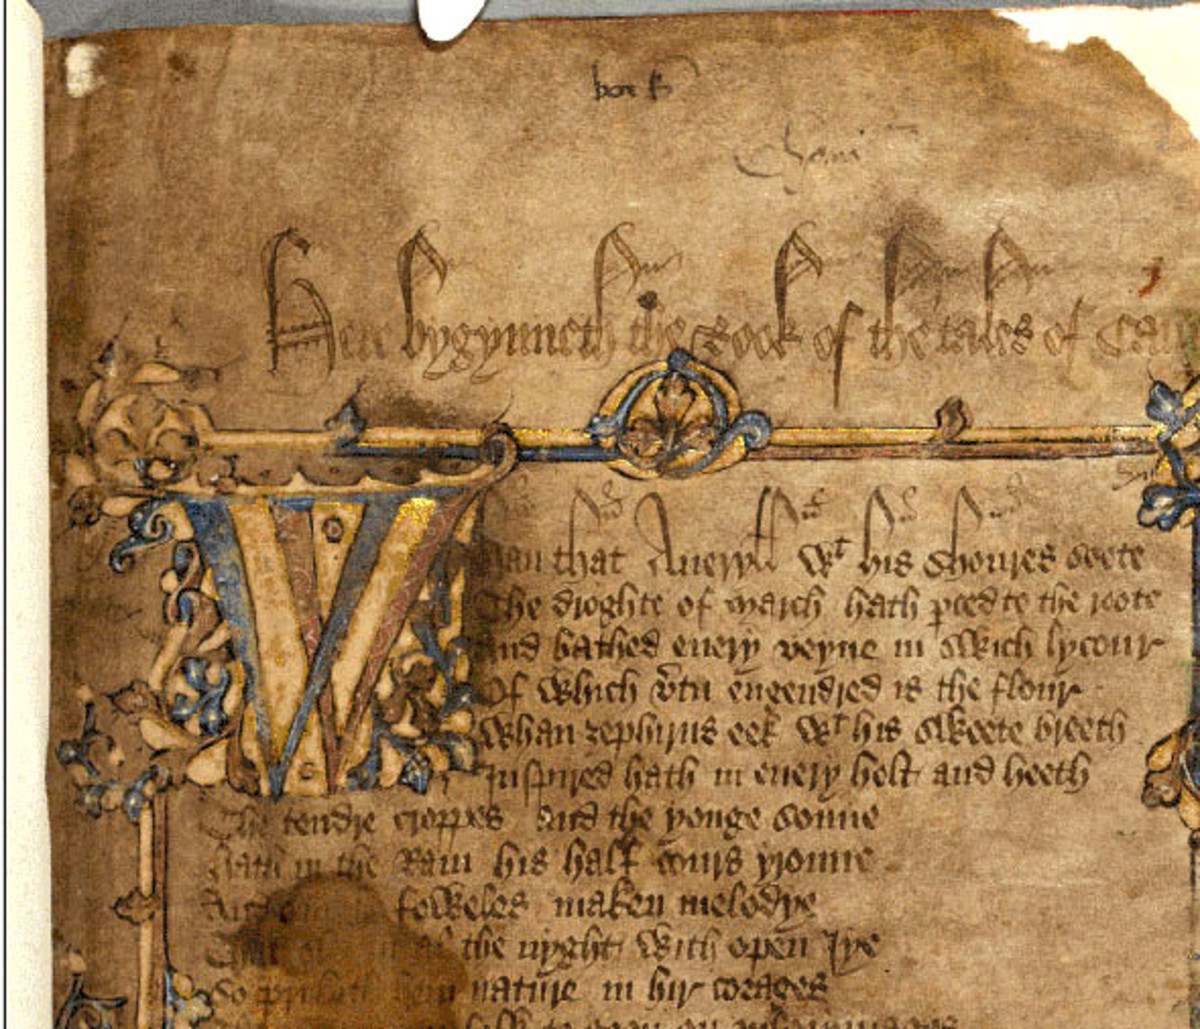 Original manuscript of the General Prologue of The Canterbury Tales by Geoffrey Chaucer.